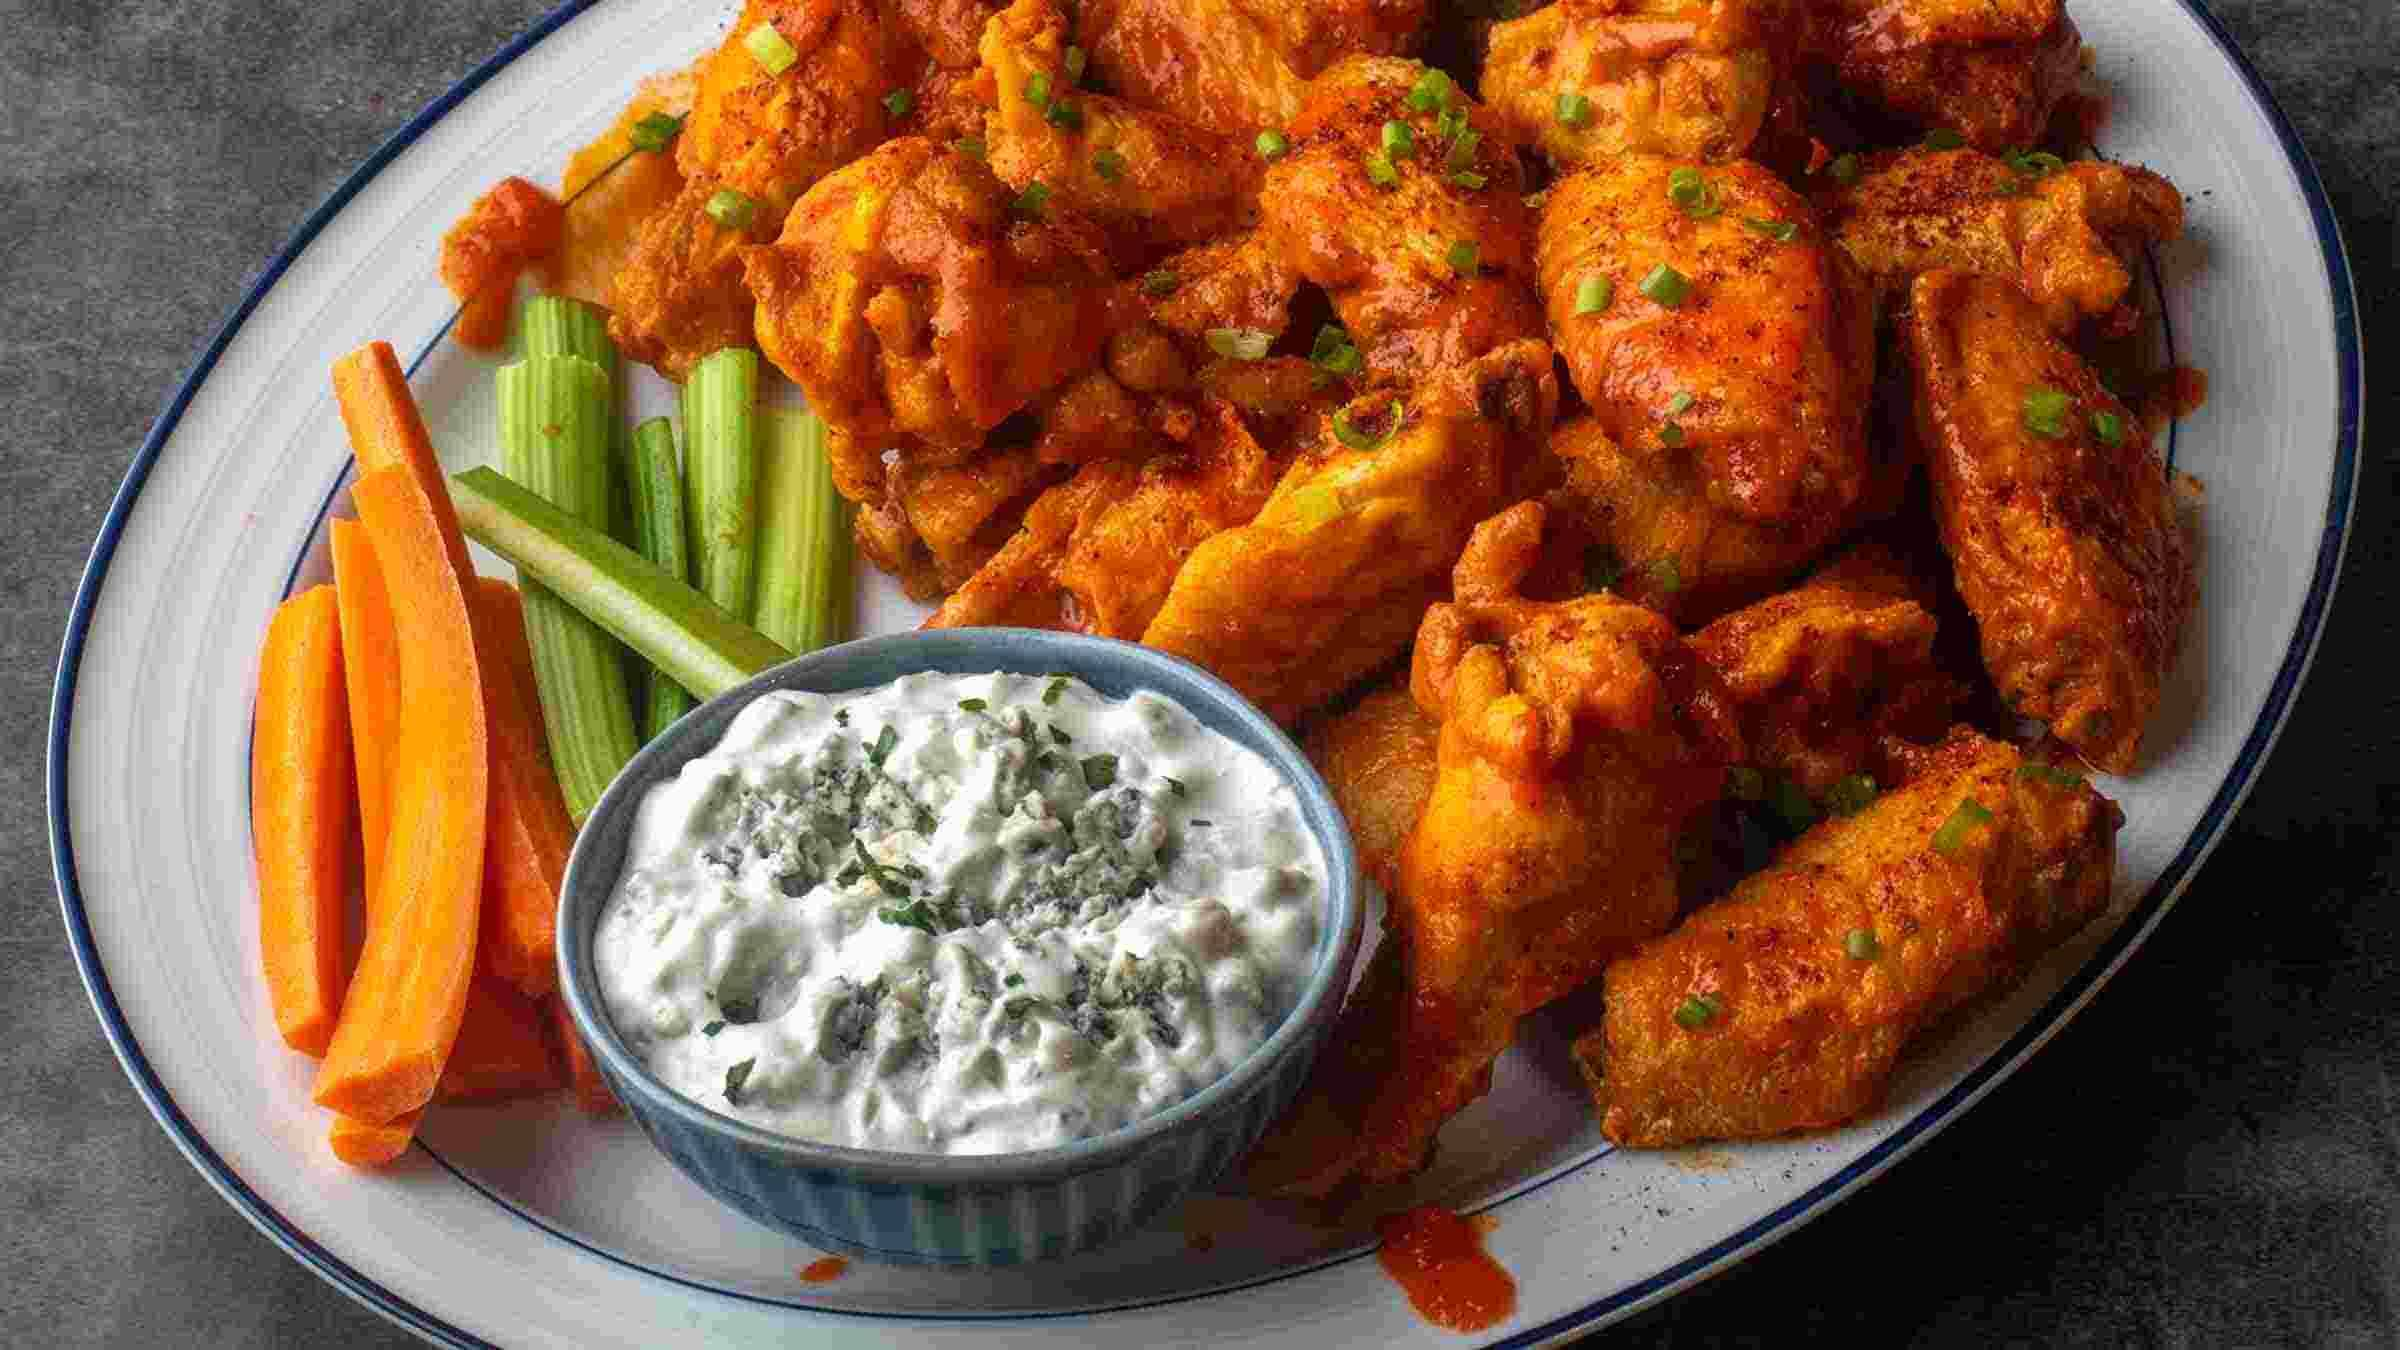 Buffalo Chicken Wings with Creamy Blue Cheese Dip